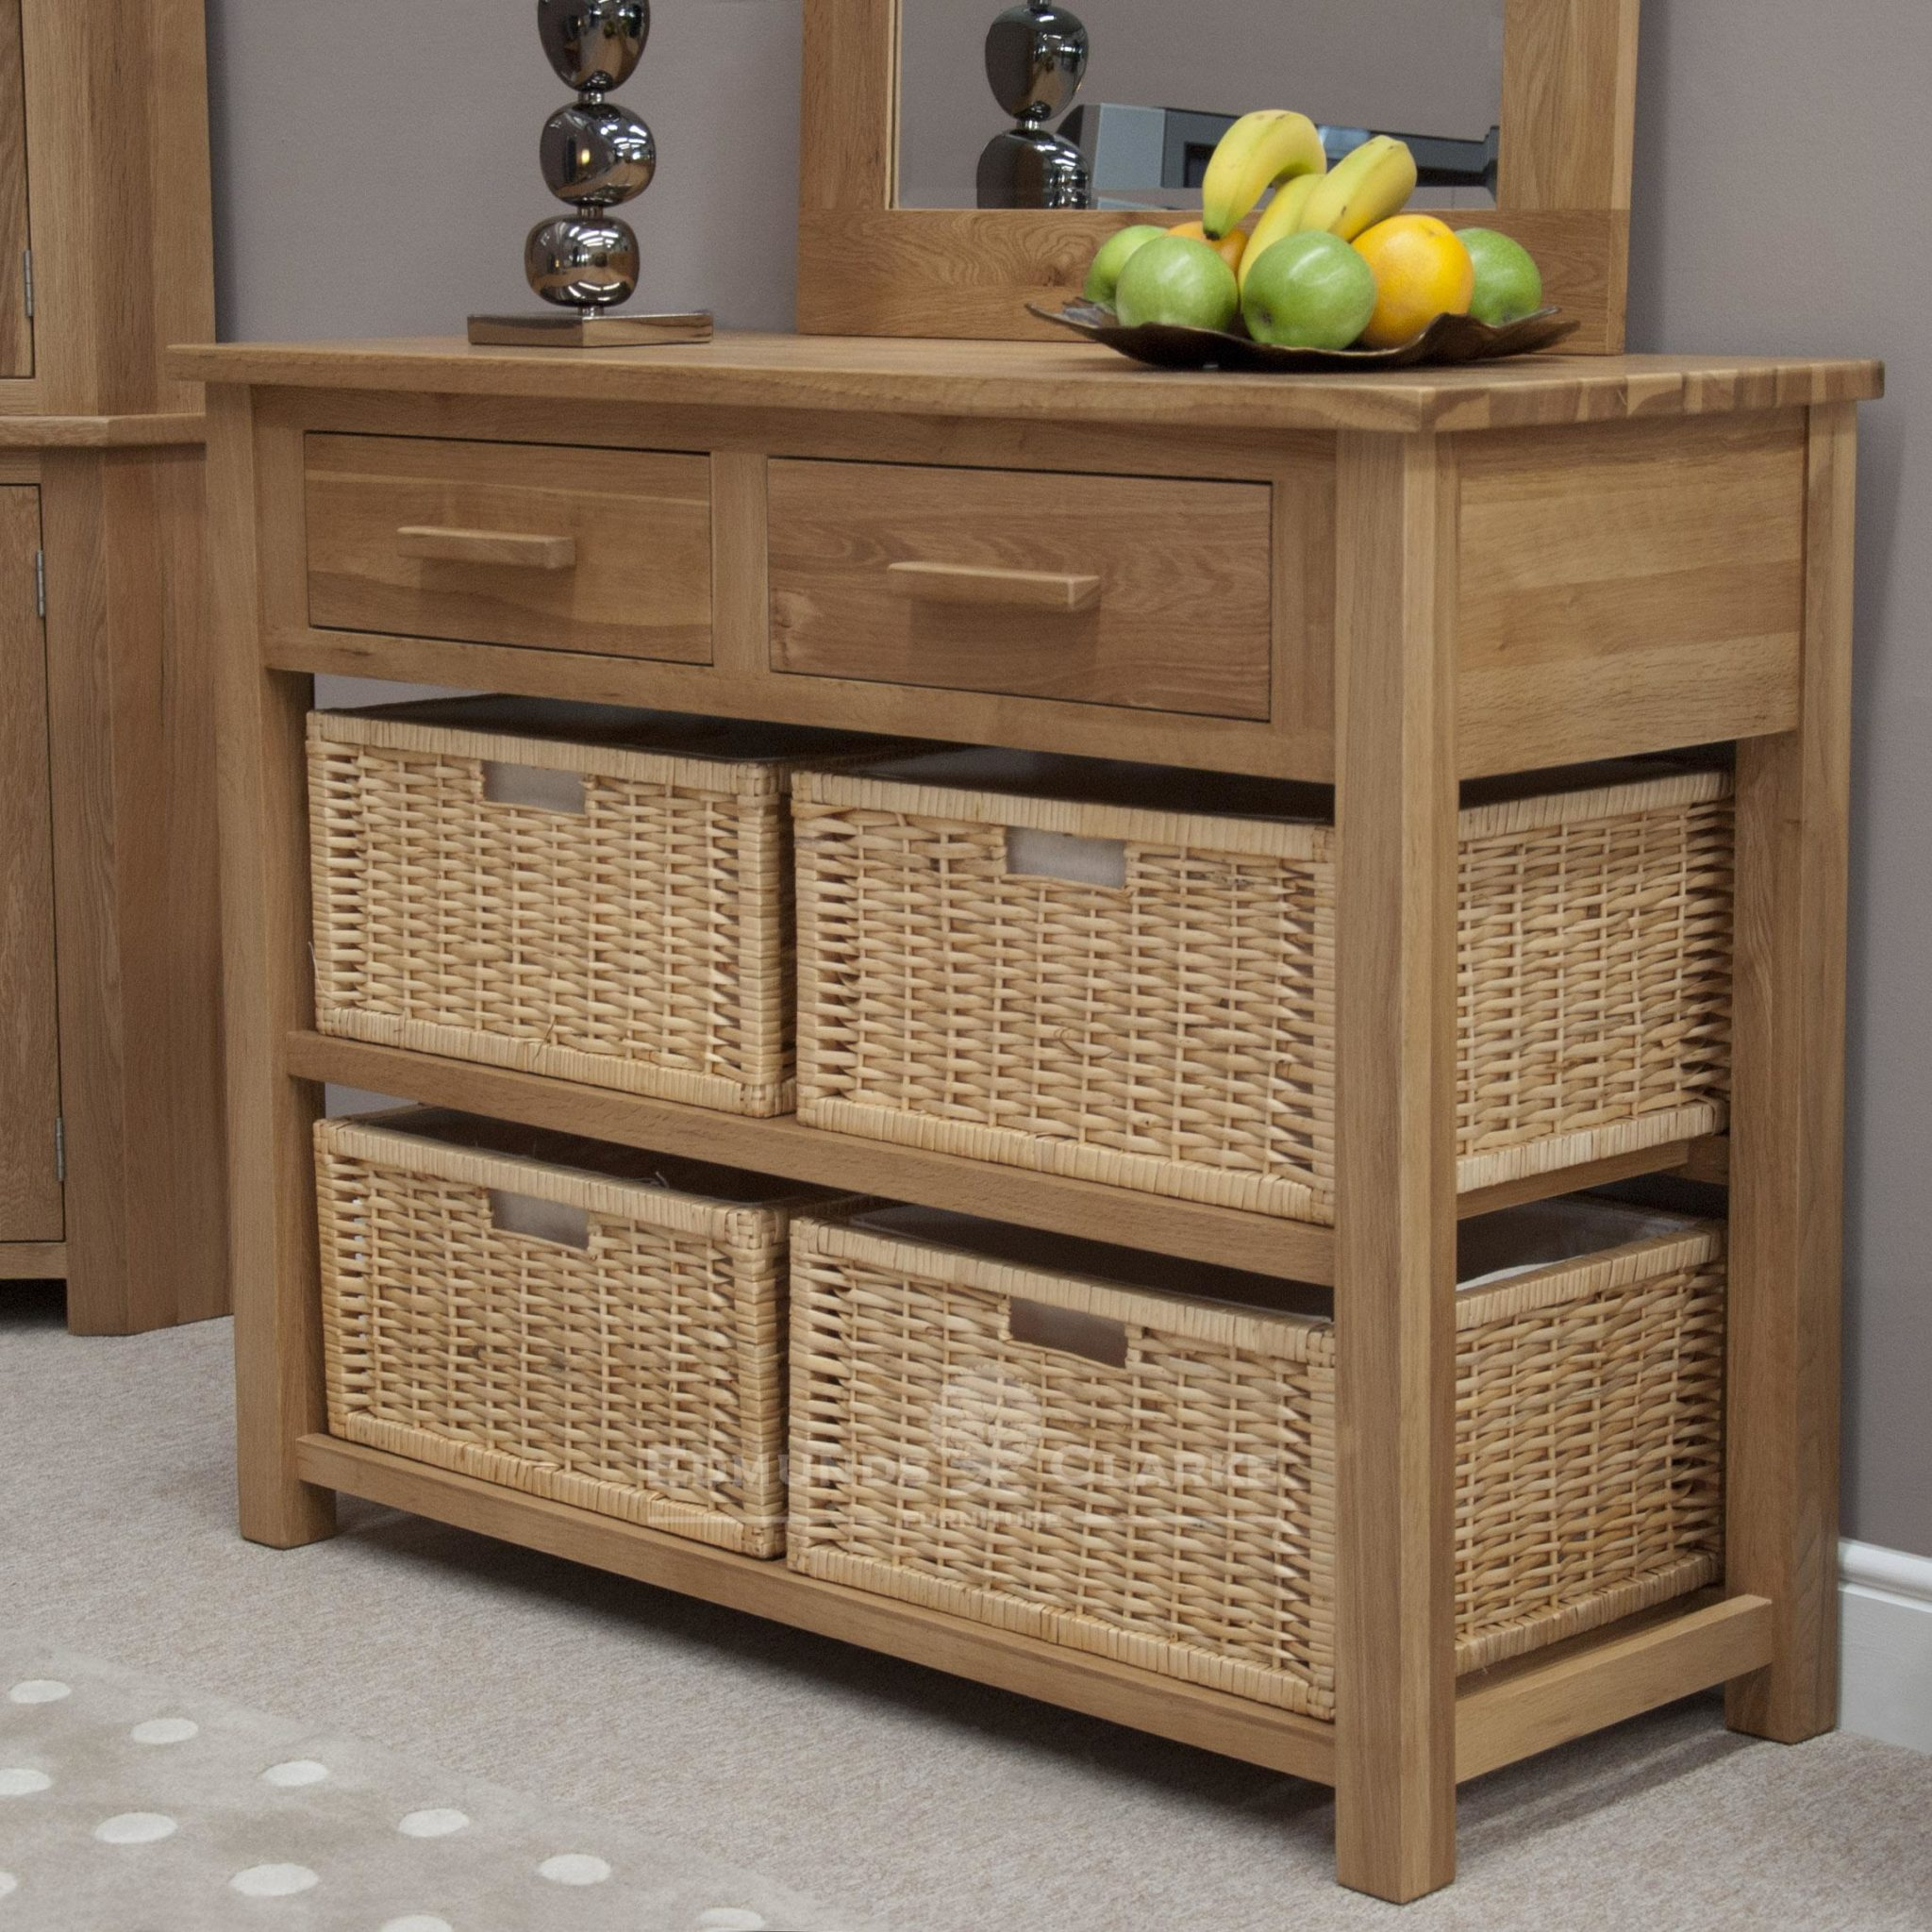 Bury solid oak Bury oak console table with baskets, 4 large baskets and 2 drawers, choiuce of handles either chrome as standard or oak bar handle as extra